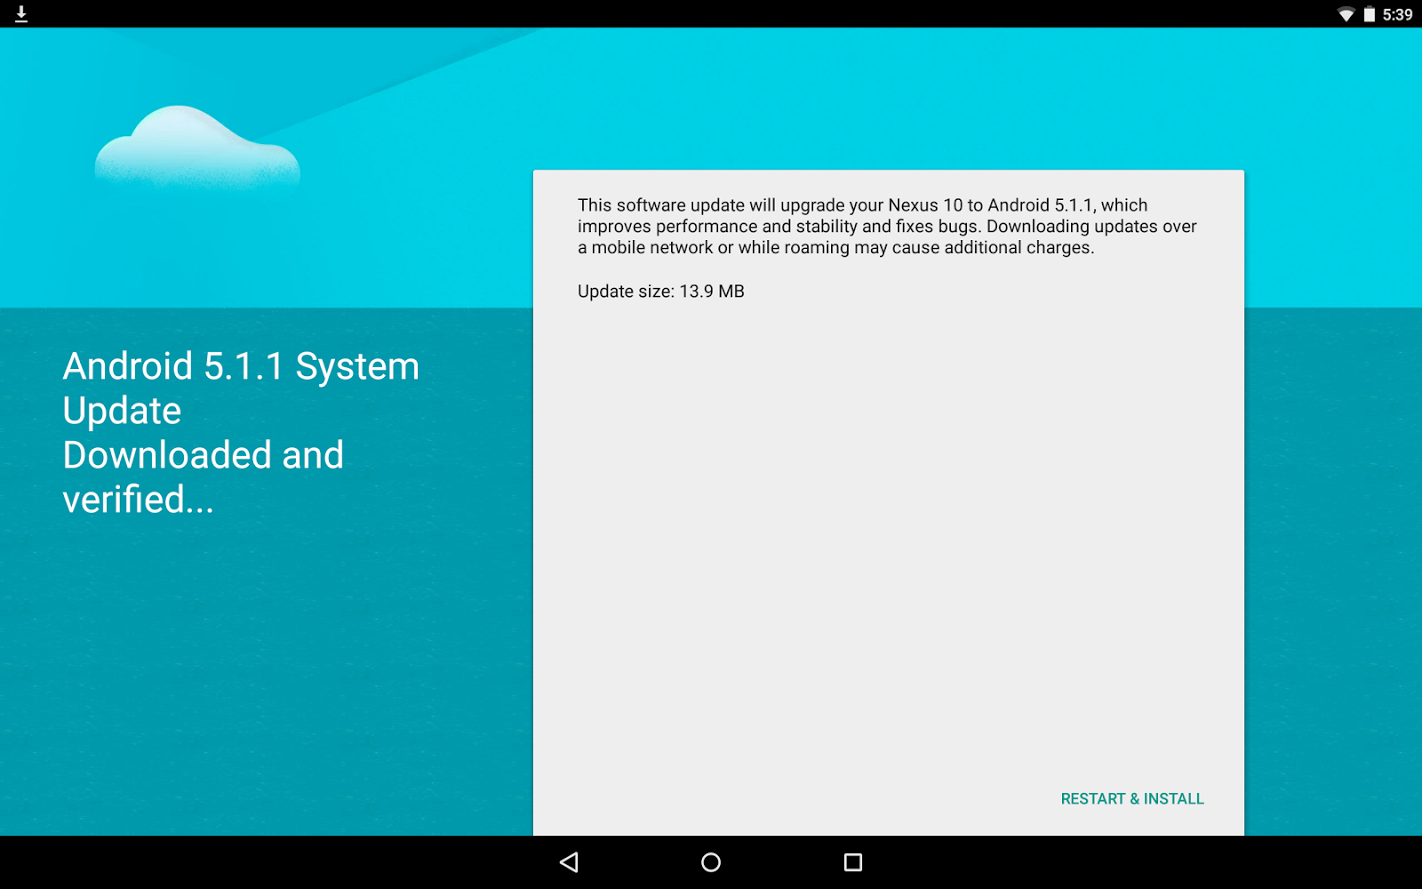 Android 5.1.1 factory images for Nexus 7 and 10 now available 1